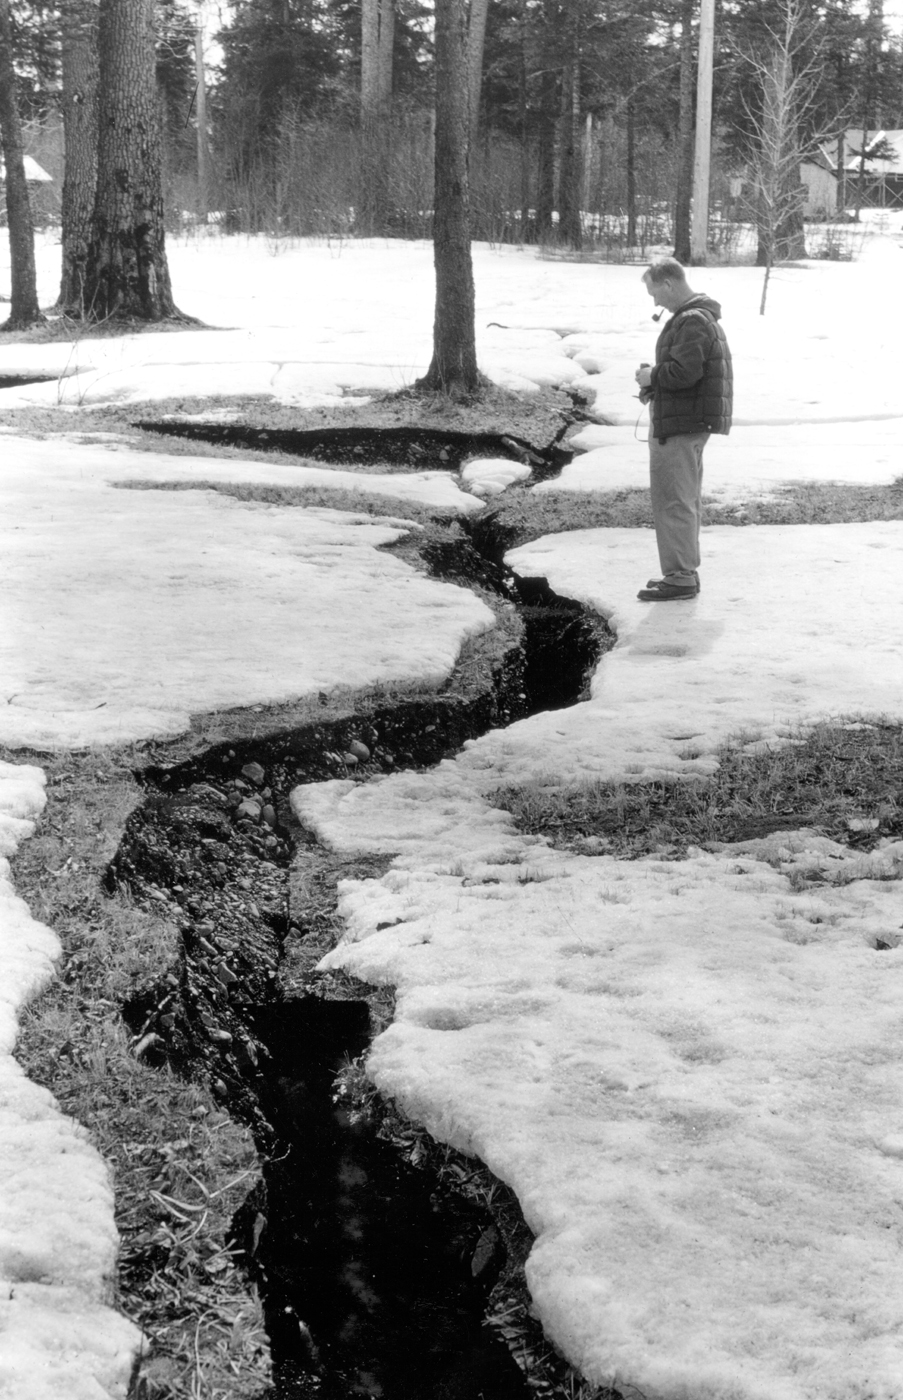 . Alaska Earthquake March 27, 1964. Ground fracture in the Forest Acres area in Seward. The fracture in the foreground is about 2 feet wide. Photo by R.D. Miller,  U.S. Geological Survey